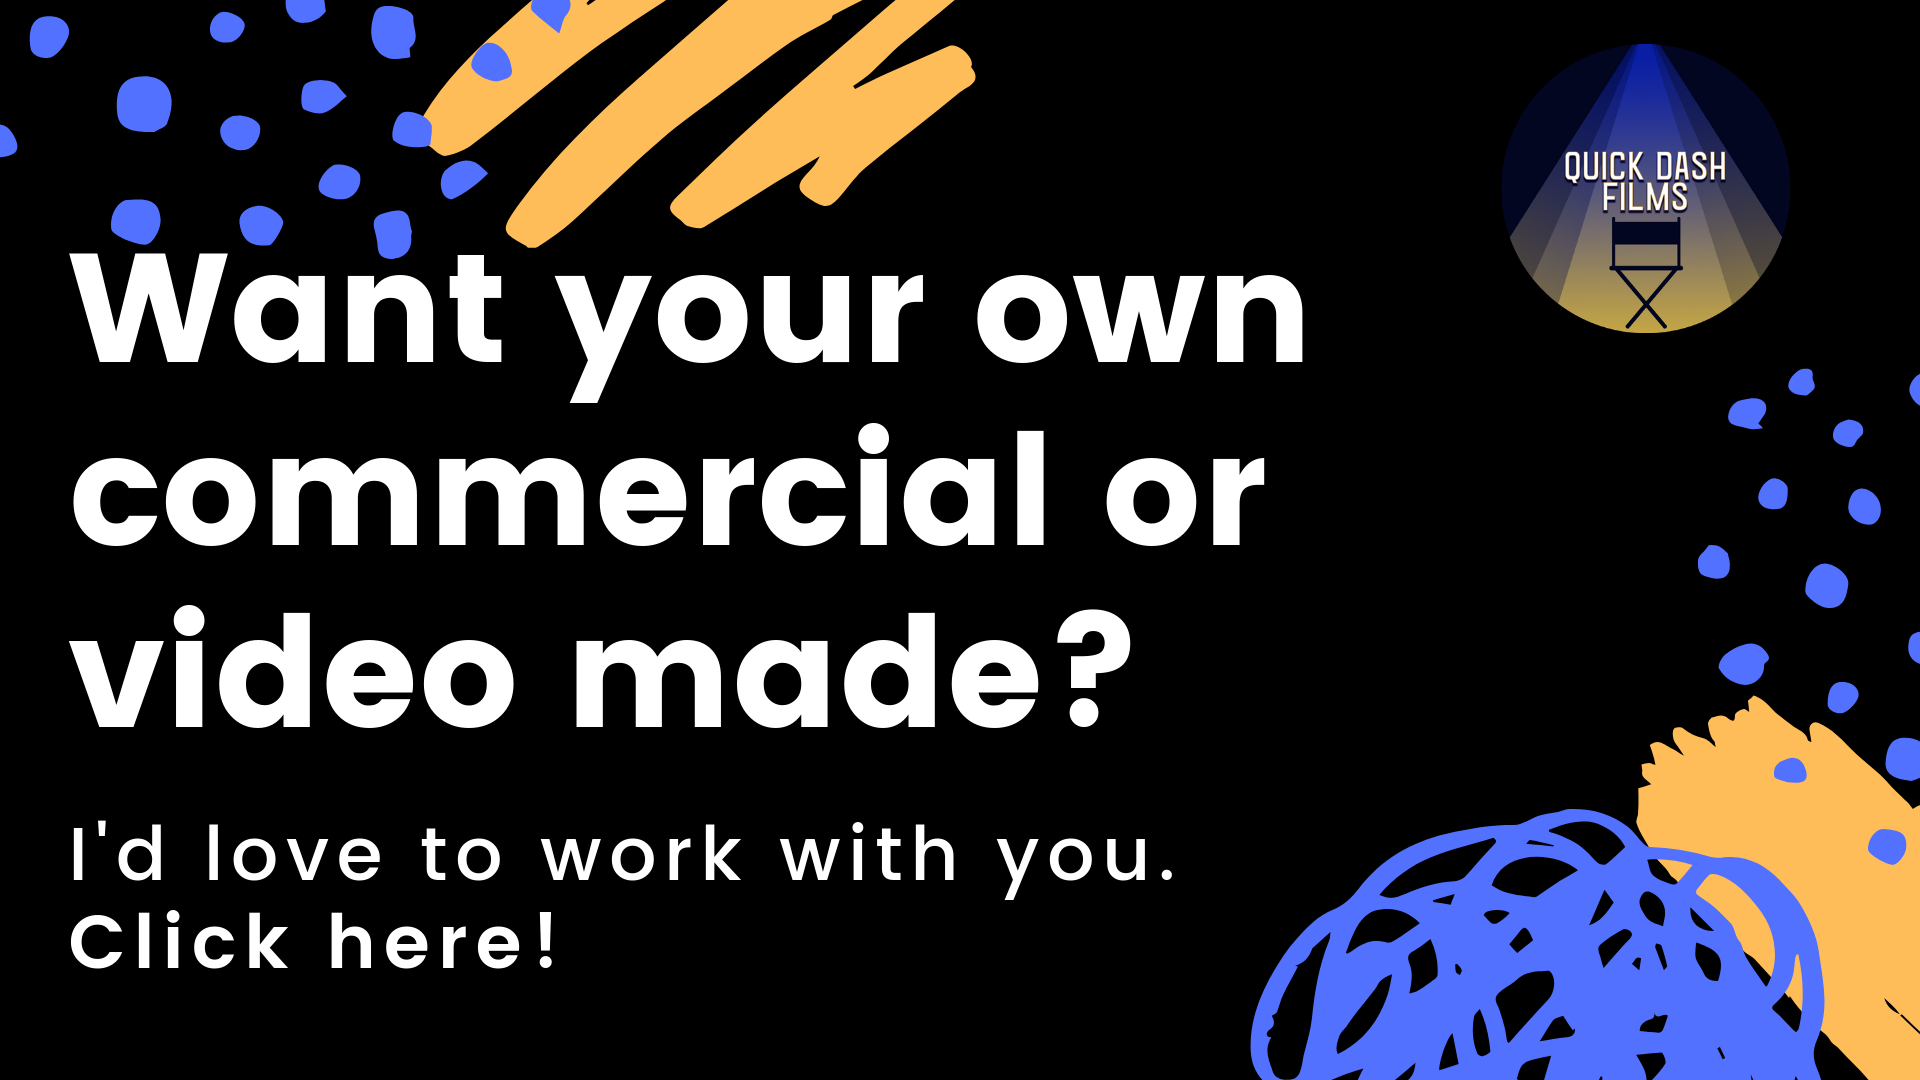 Want your own commercial or video made_ Site Image.png